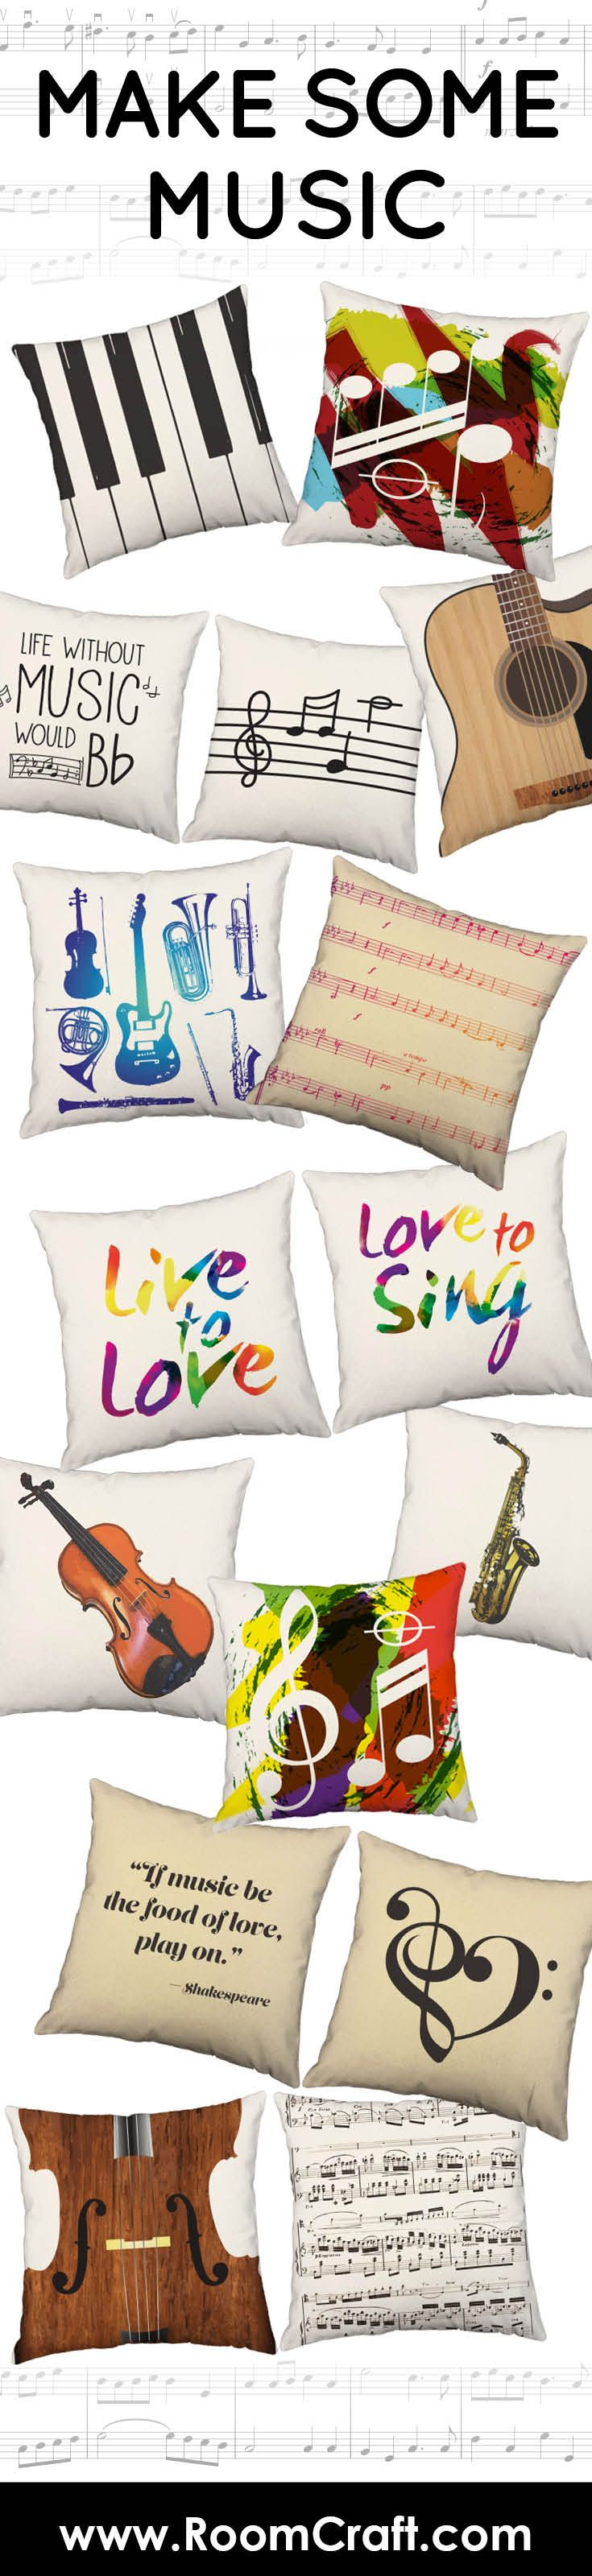 Celebrate your love for music with any of our musically inspired throw pillows. Our designs range from instruments to song. Each one is offered in multiple colors, sizes and fabrics making them the perfect addition for your home, library, or studio. Click through to the website to browse all of our musical designs and choose your favorite to create the perfect pillow pair for your home! #roomcraft